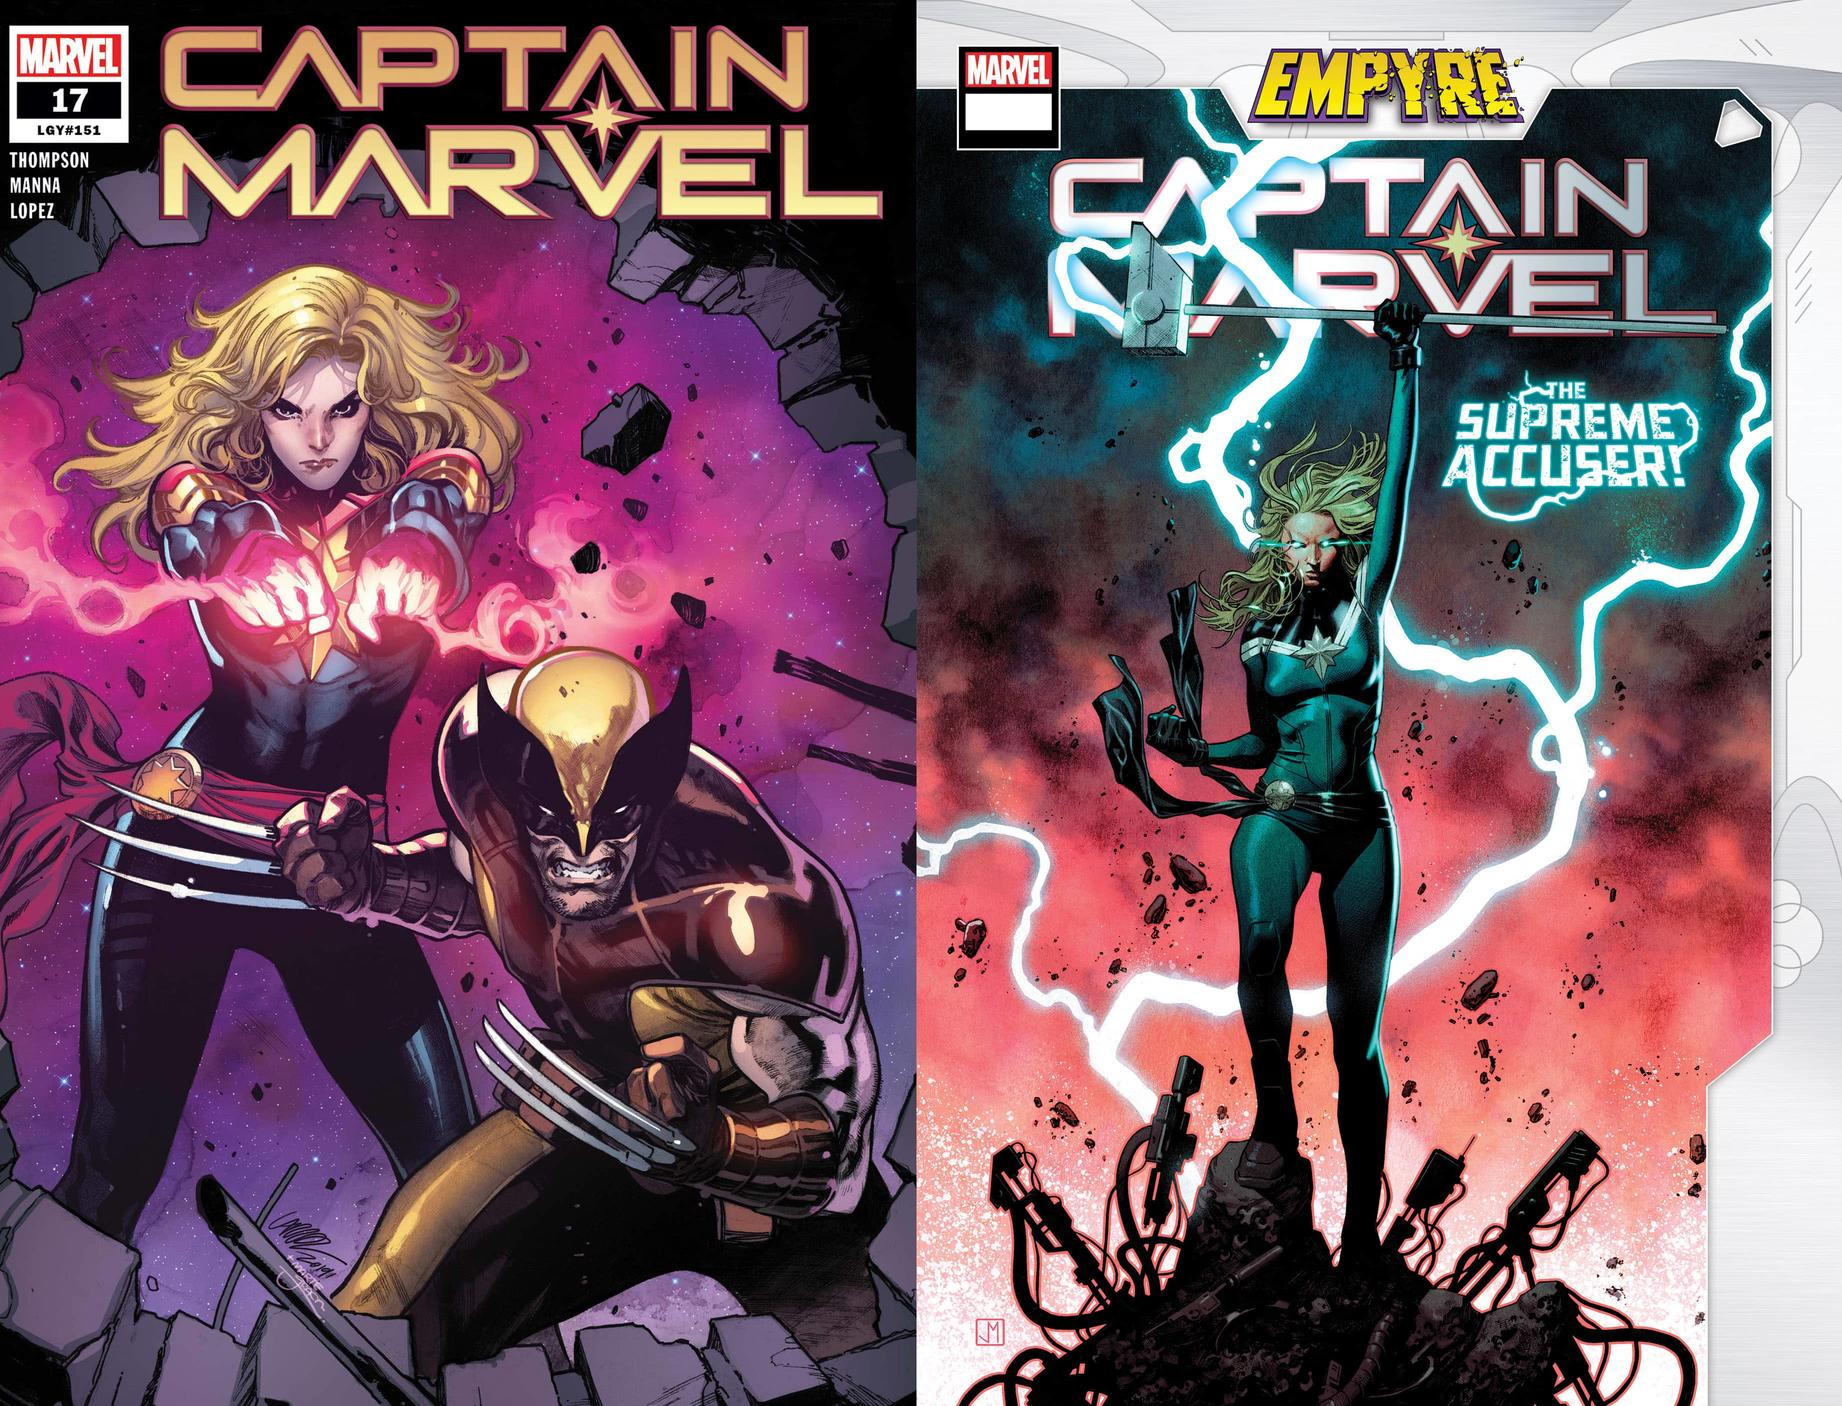 Captain Marvel #17 and #18